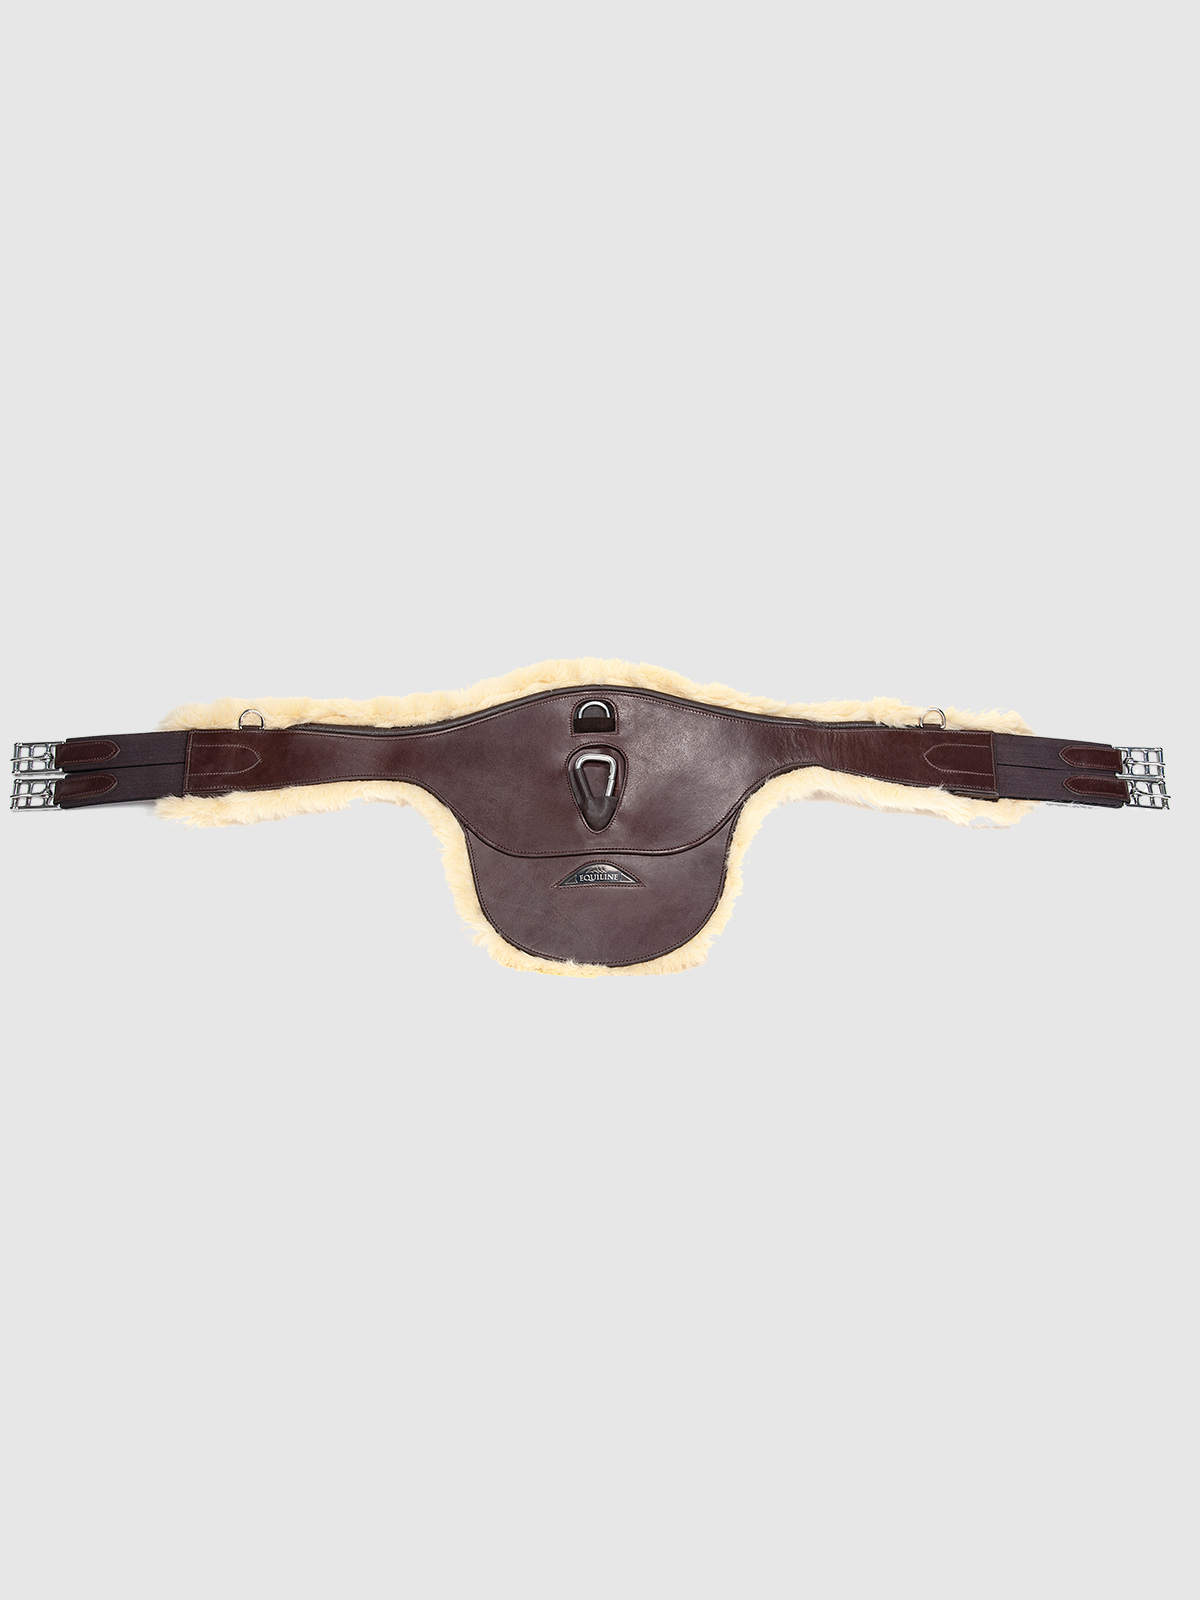 Belly Guard Girth with Sheepskin Lining 2